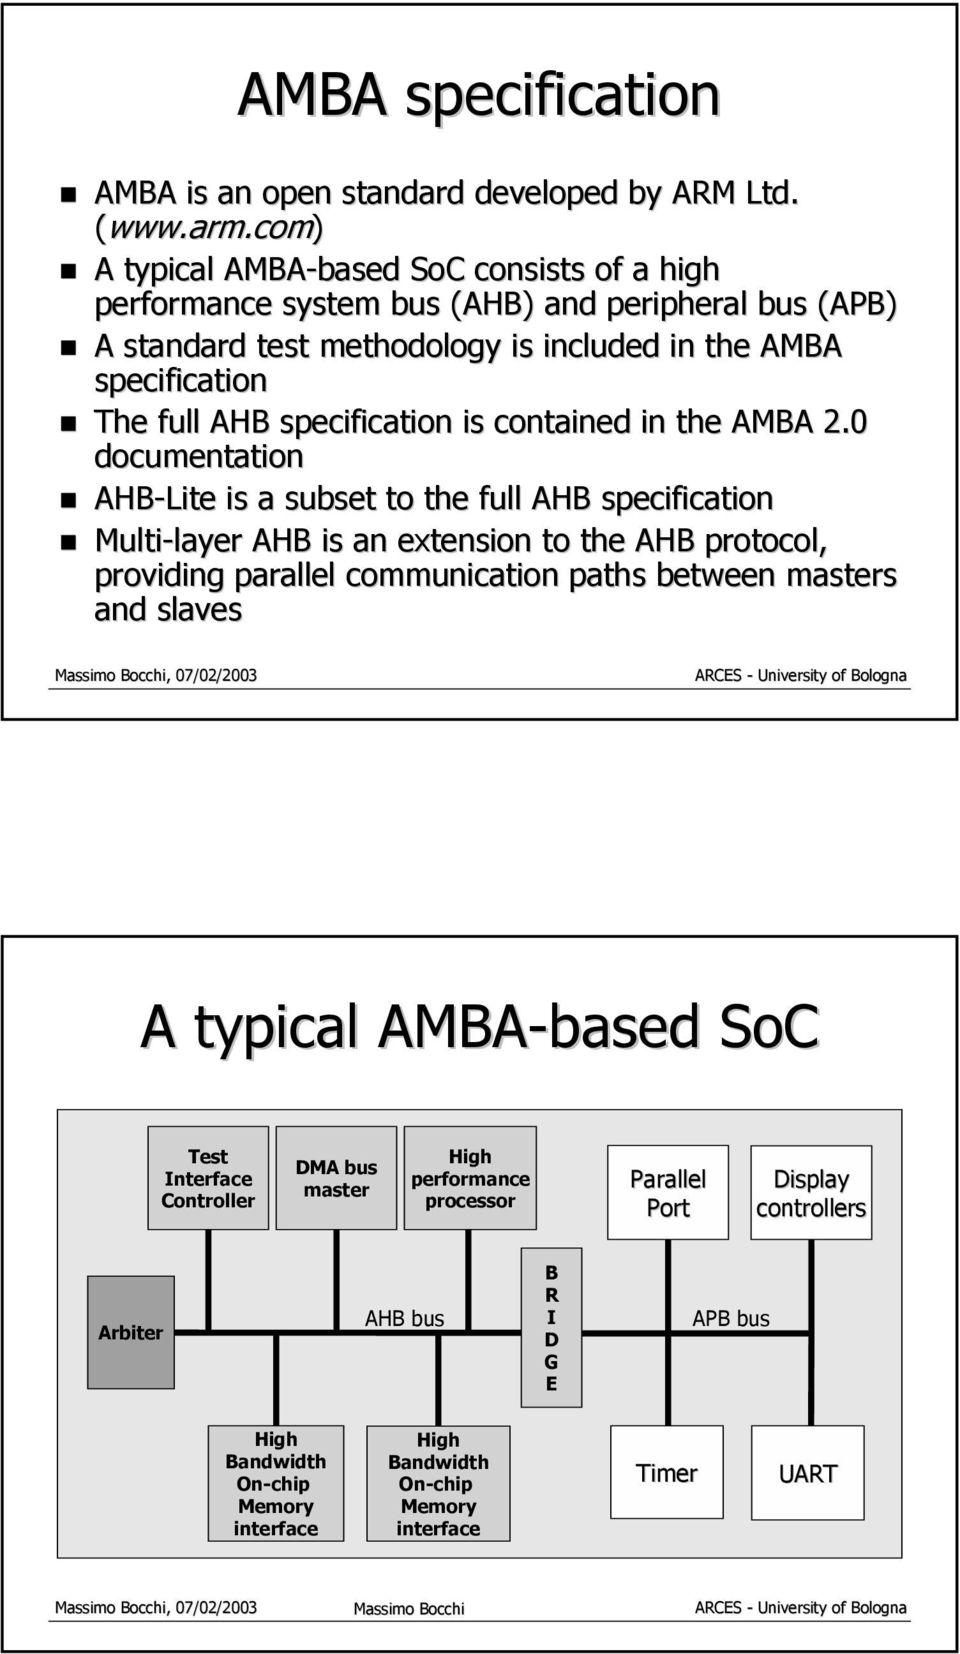 contained in the AMBA 2.